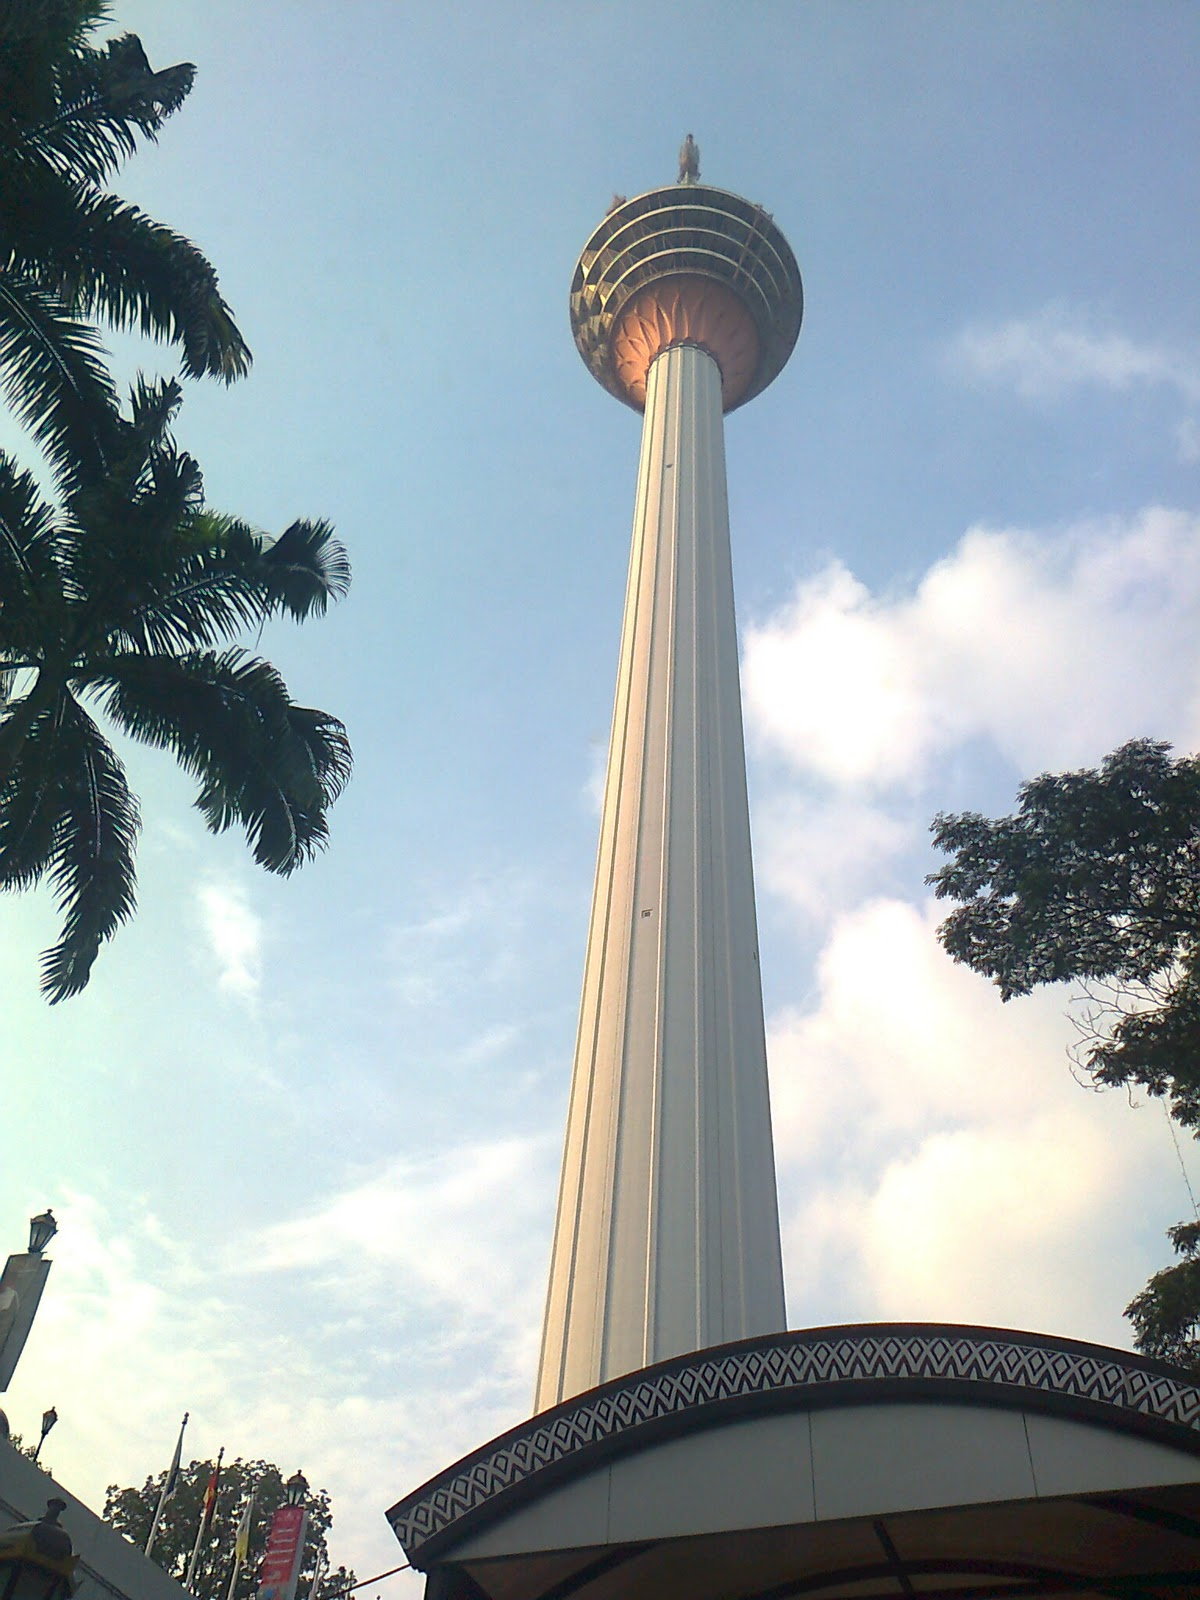 manna mania: KL Tower Hi Tea